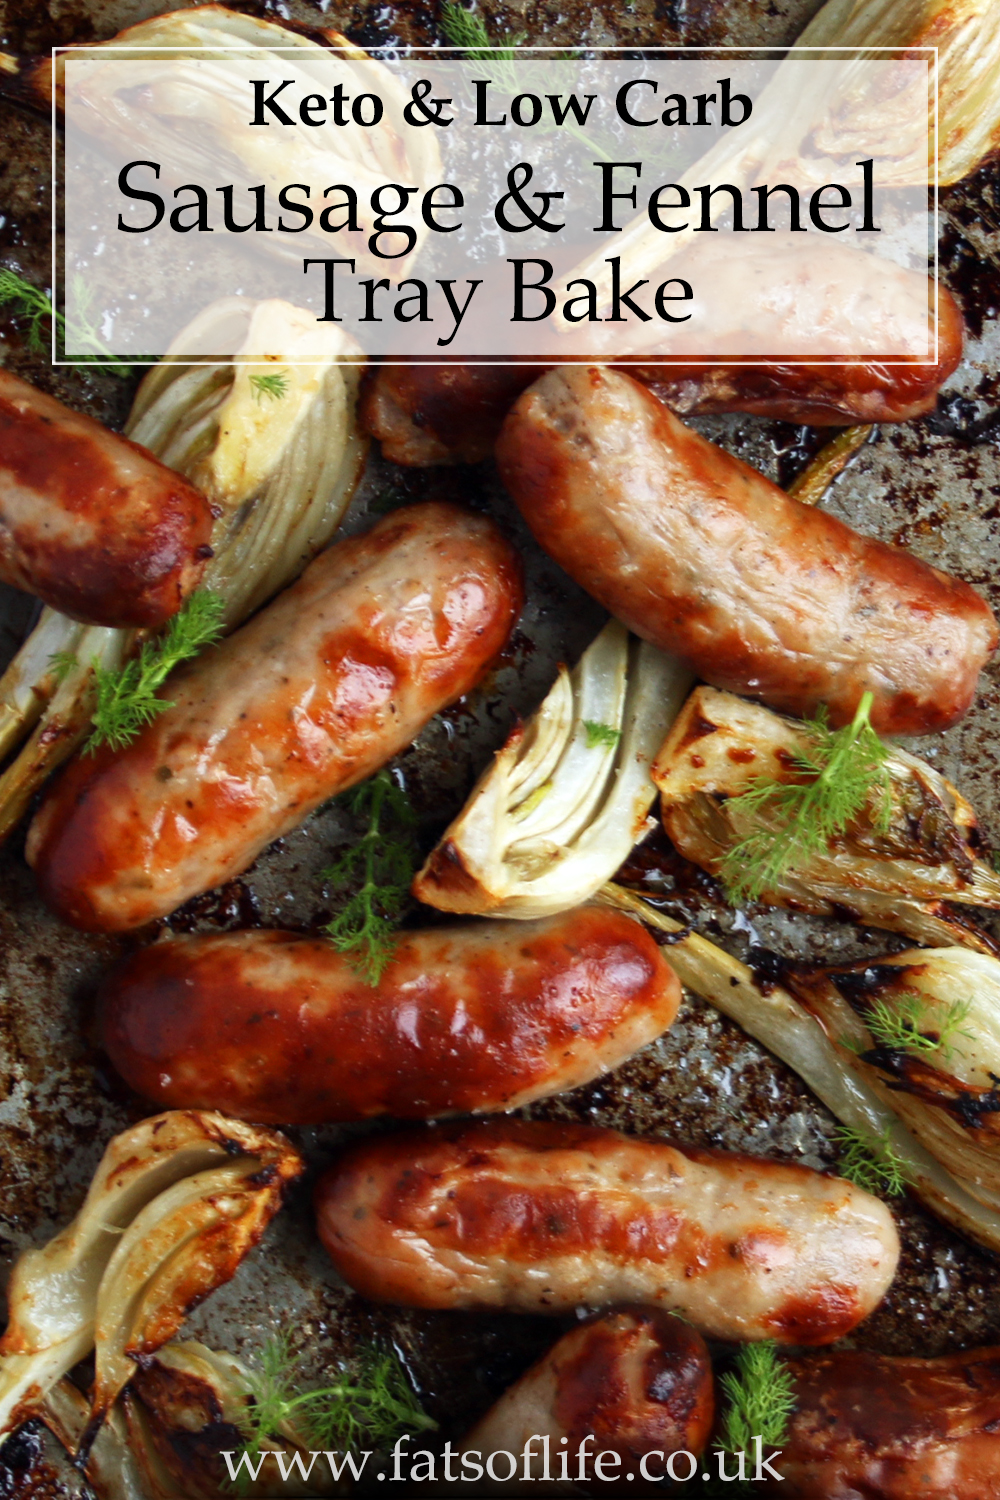 Sausage and Fennel Tray Bake